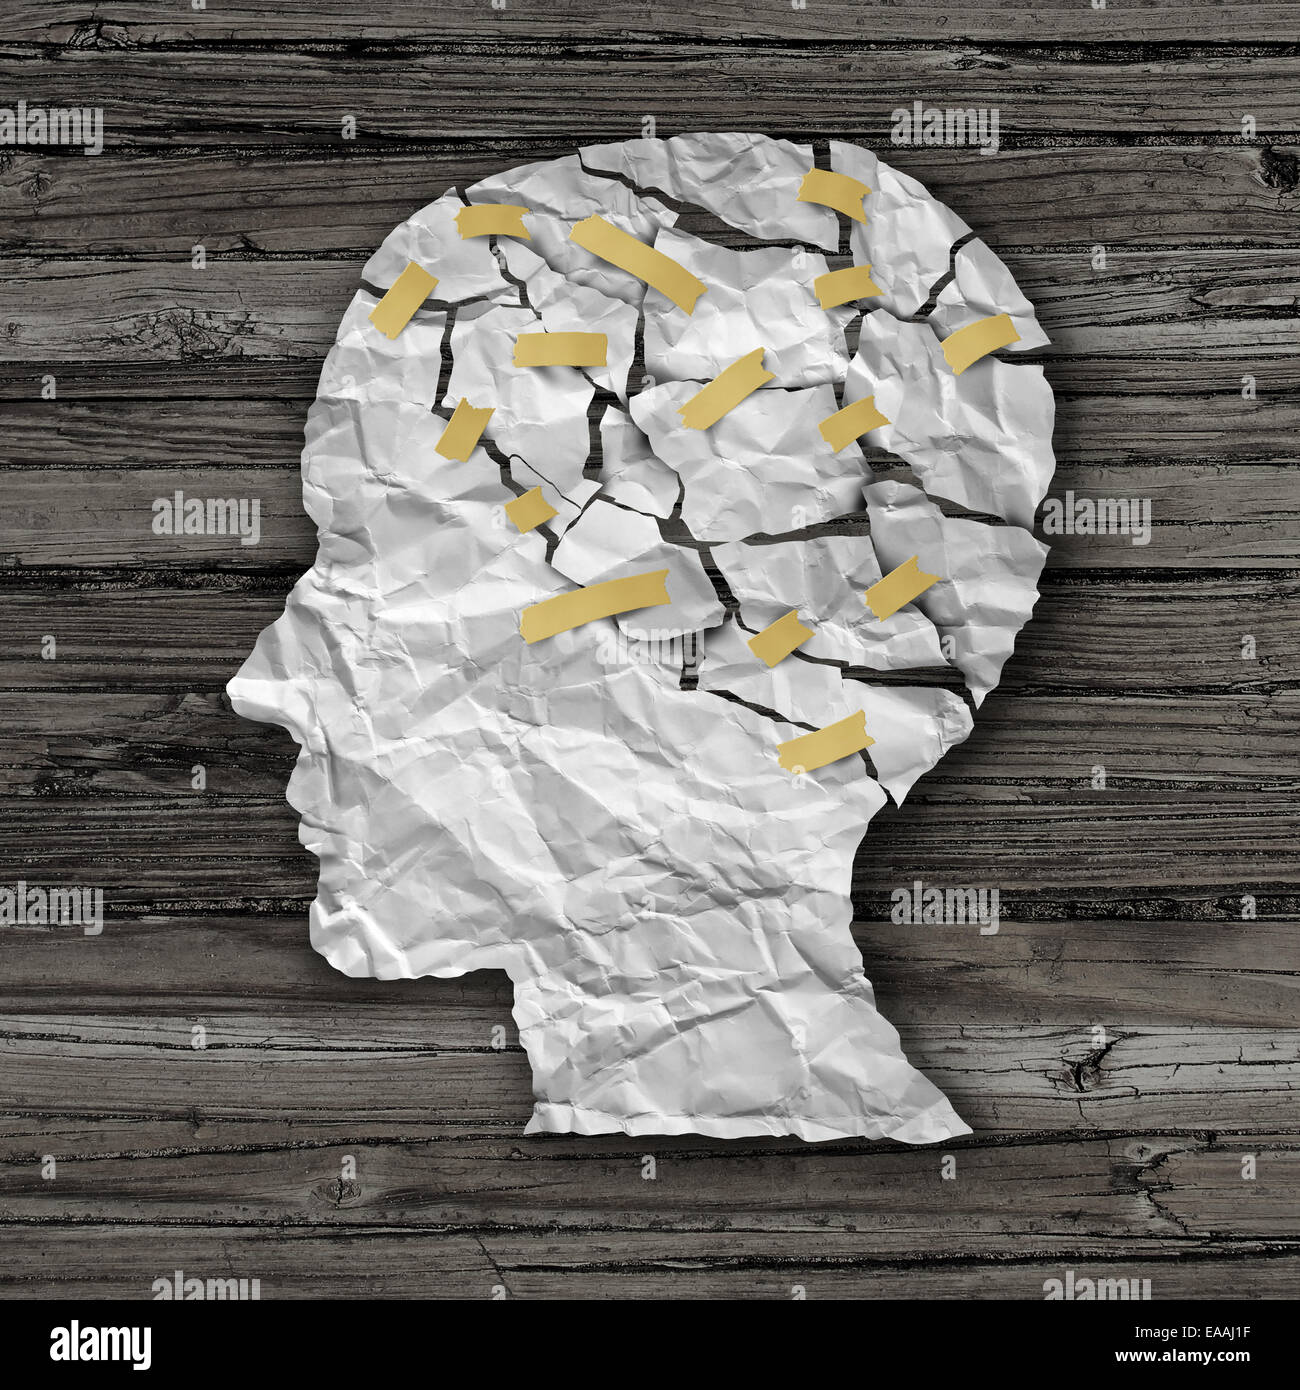 Brain disease therapy and mental health treatment concept as a sheet of torn crumpled white paper taped together - Stock Image